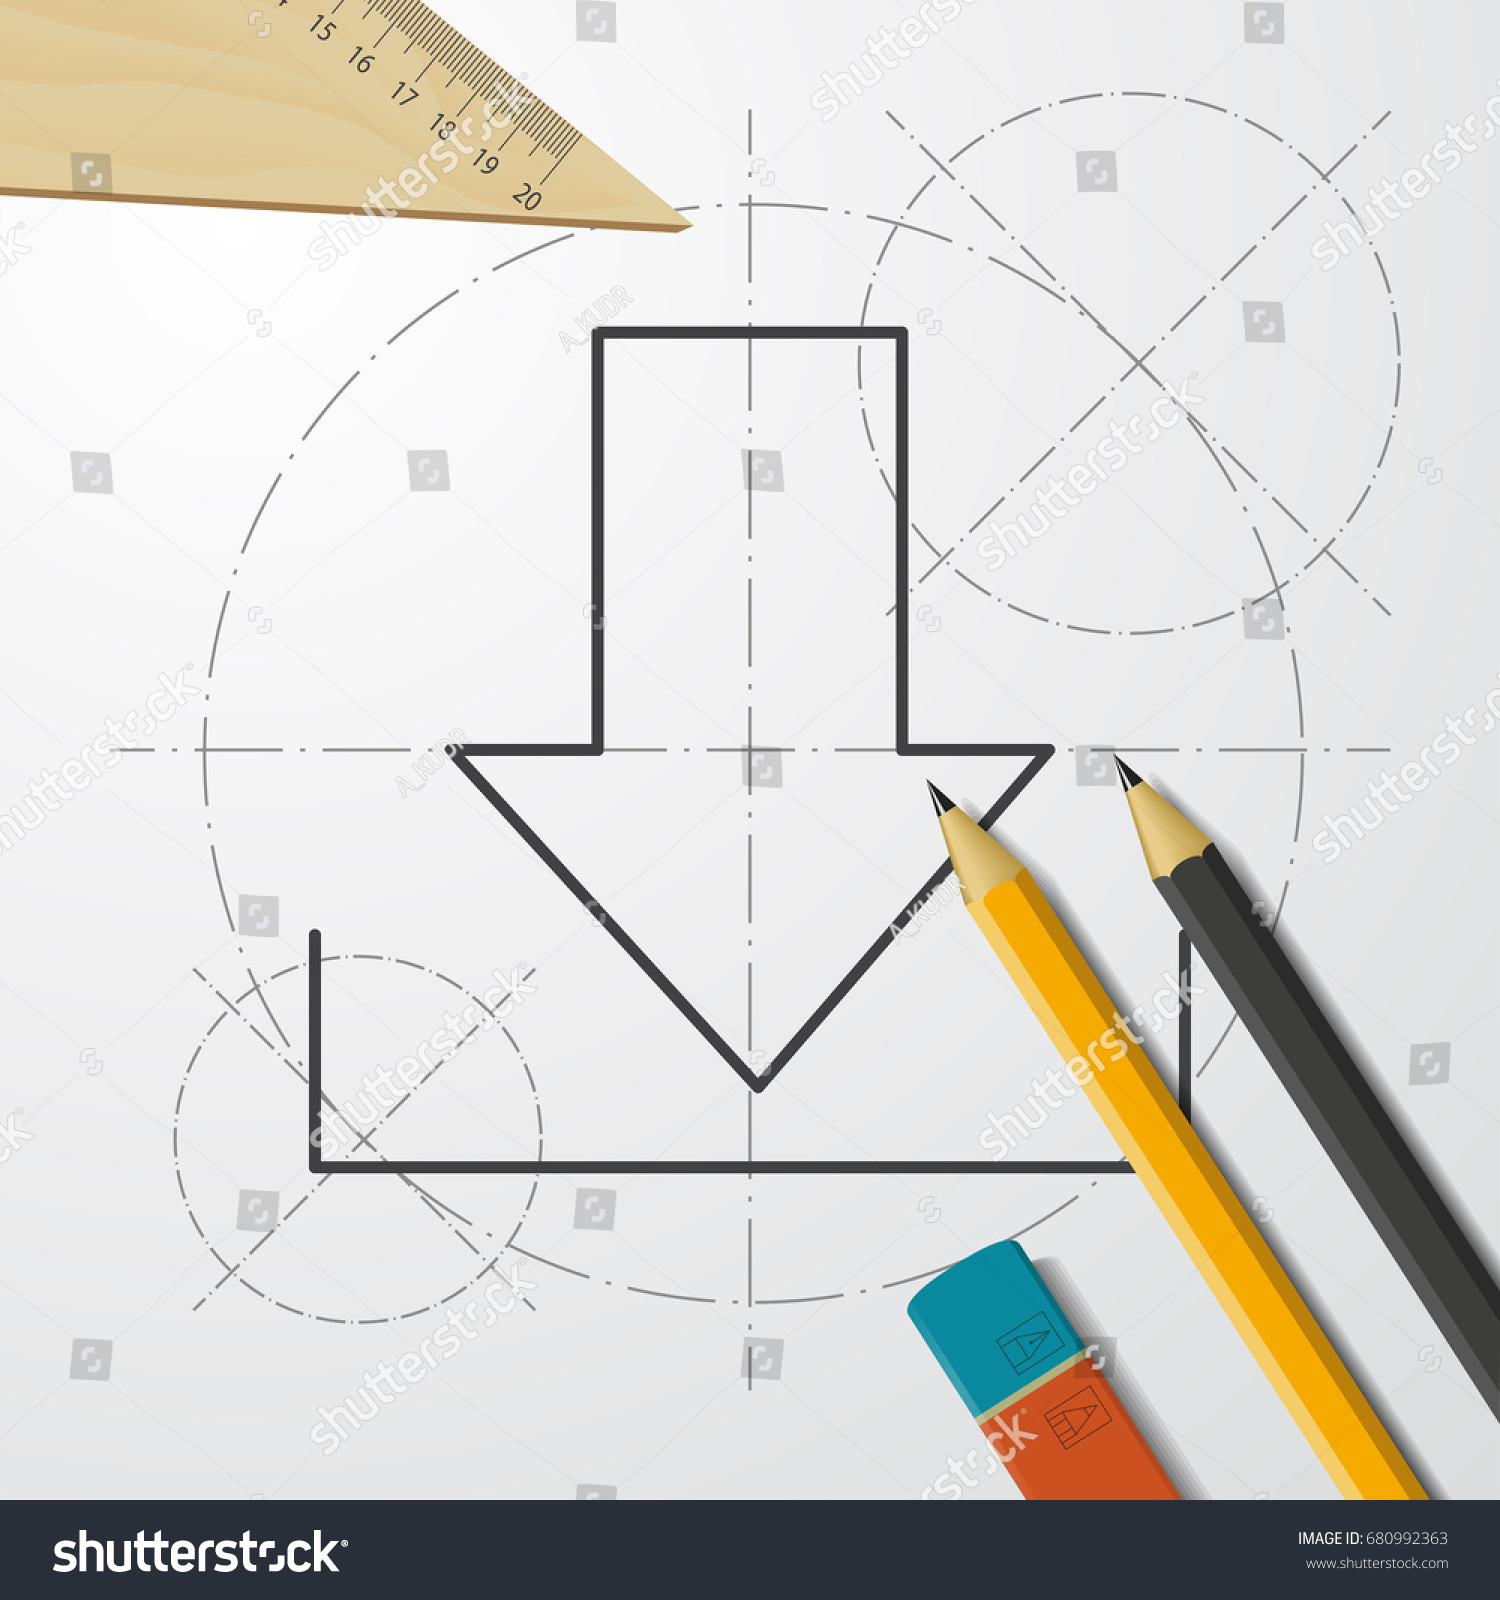 Vector blueprint download icon on engineer stock vector 680992363 vector blueprint download icon on engineer and architect background business collection malvernweather Gallery